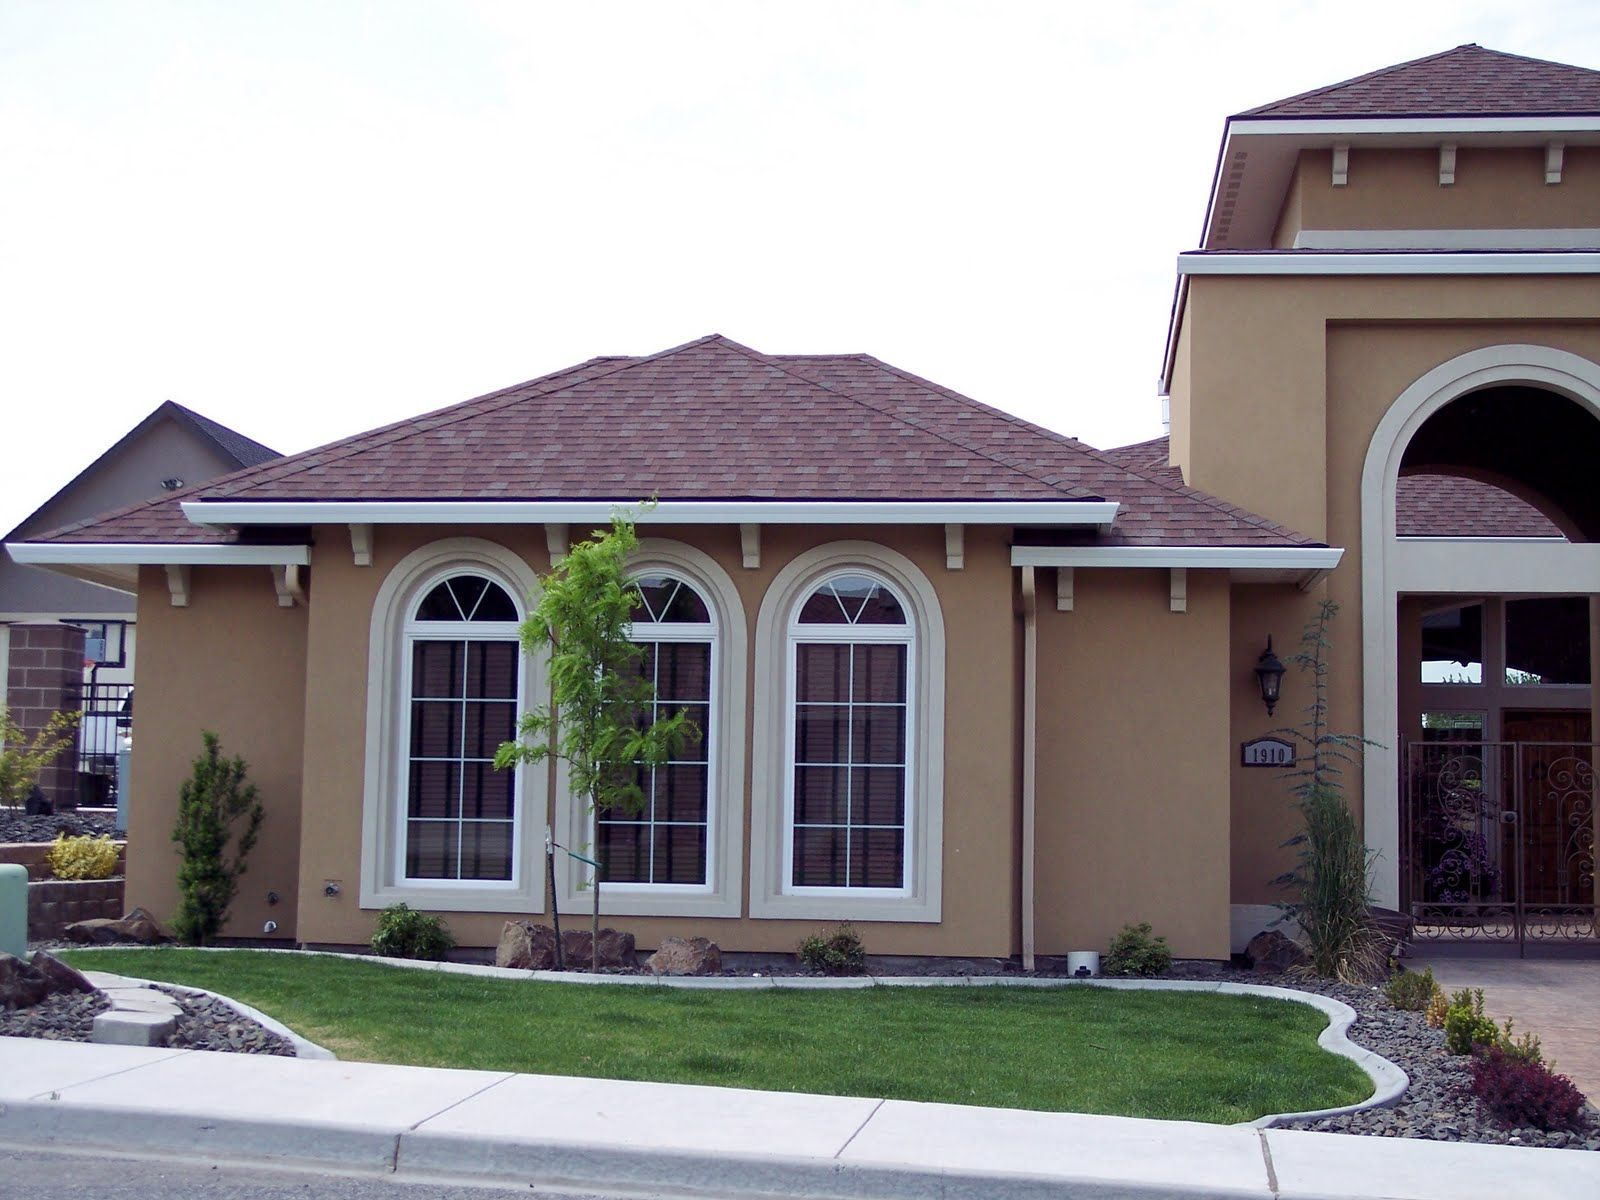 Exterior stucco house paint ideas - Exterior House Color Combinations This Home Has A Good Body Trim And Roof Exterior Paint Ideashome